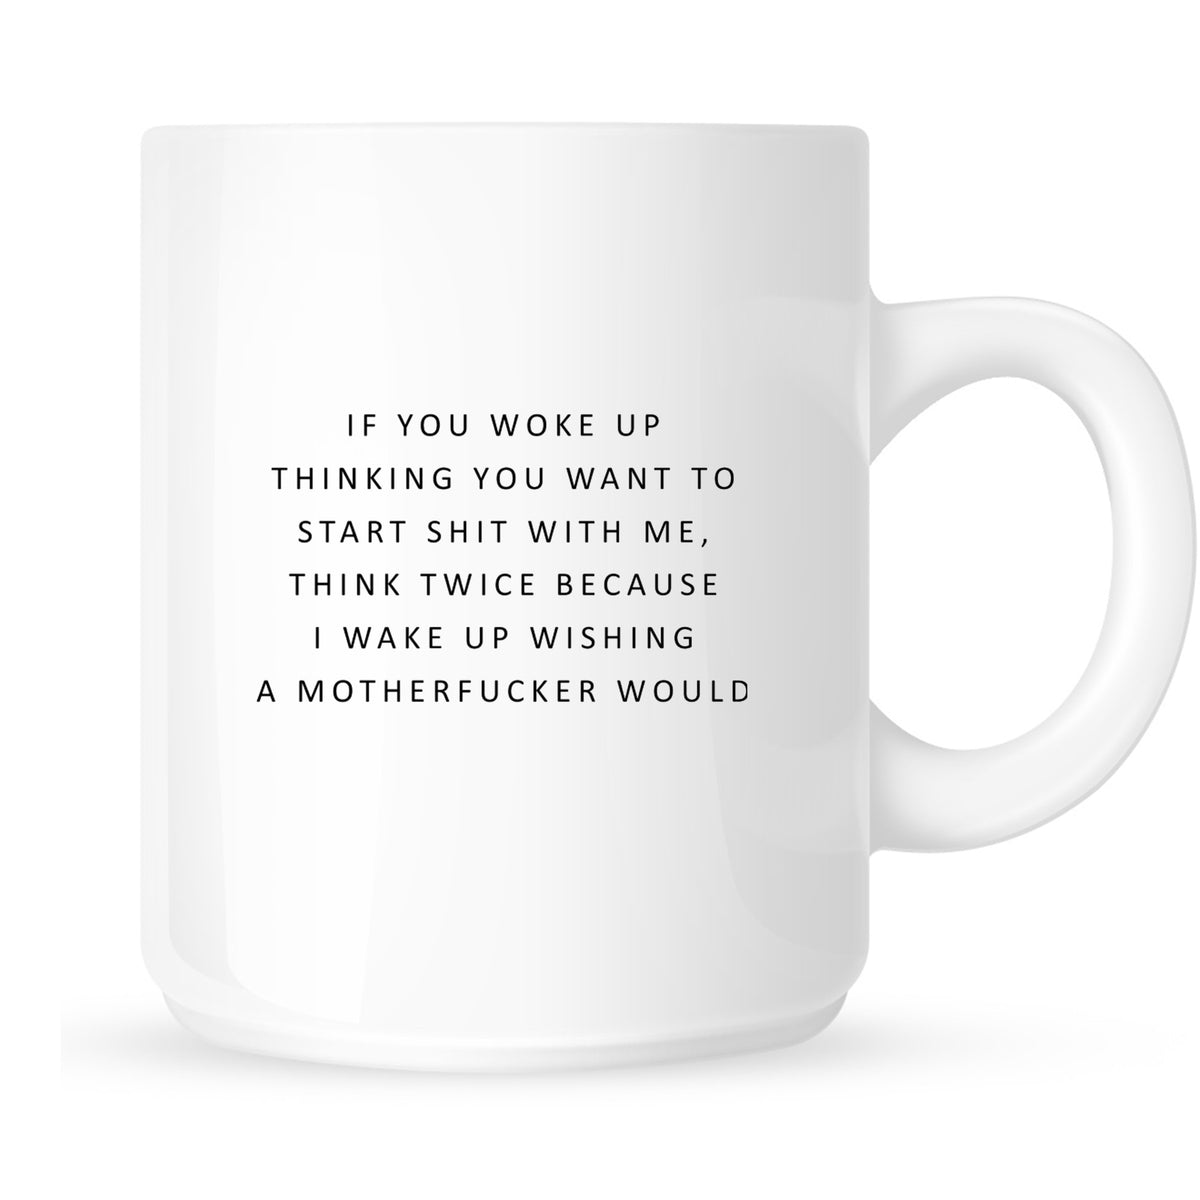 Mug - If You Woke Up Thinking You Want to Start Shit With Me...